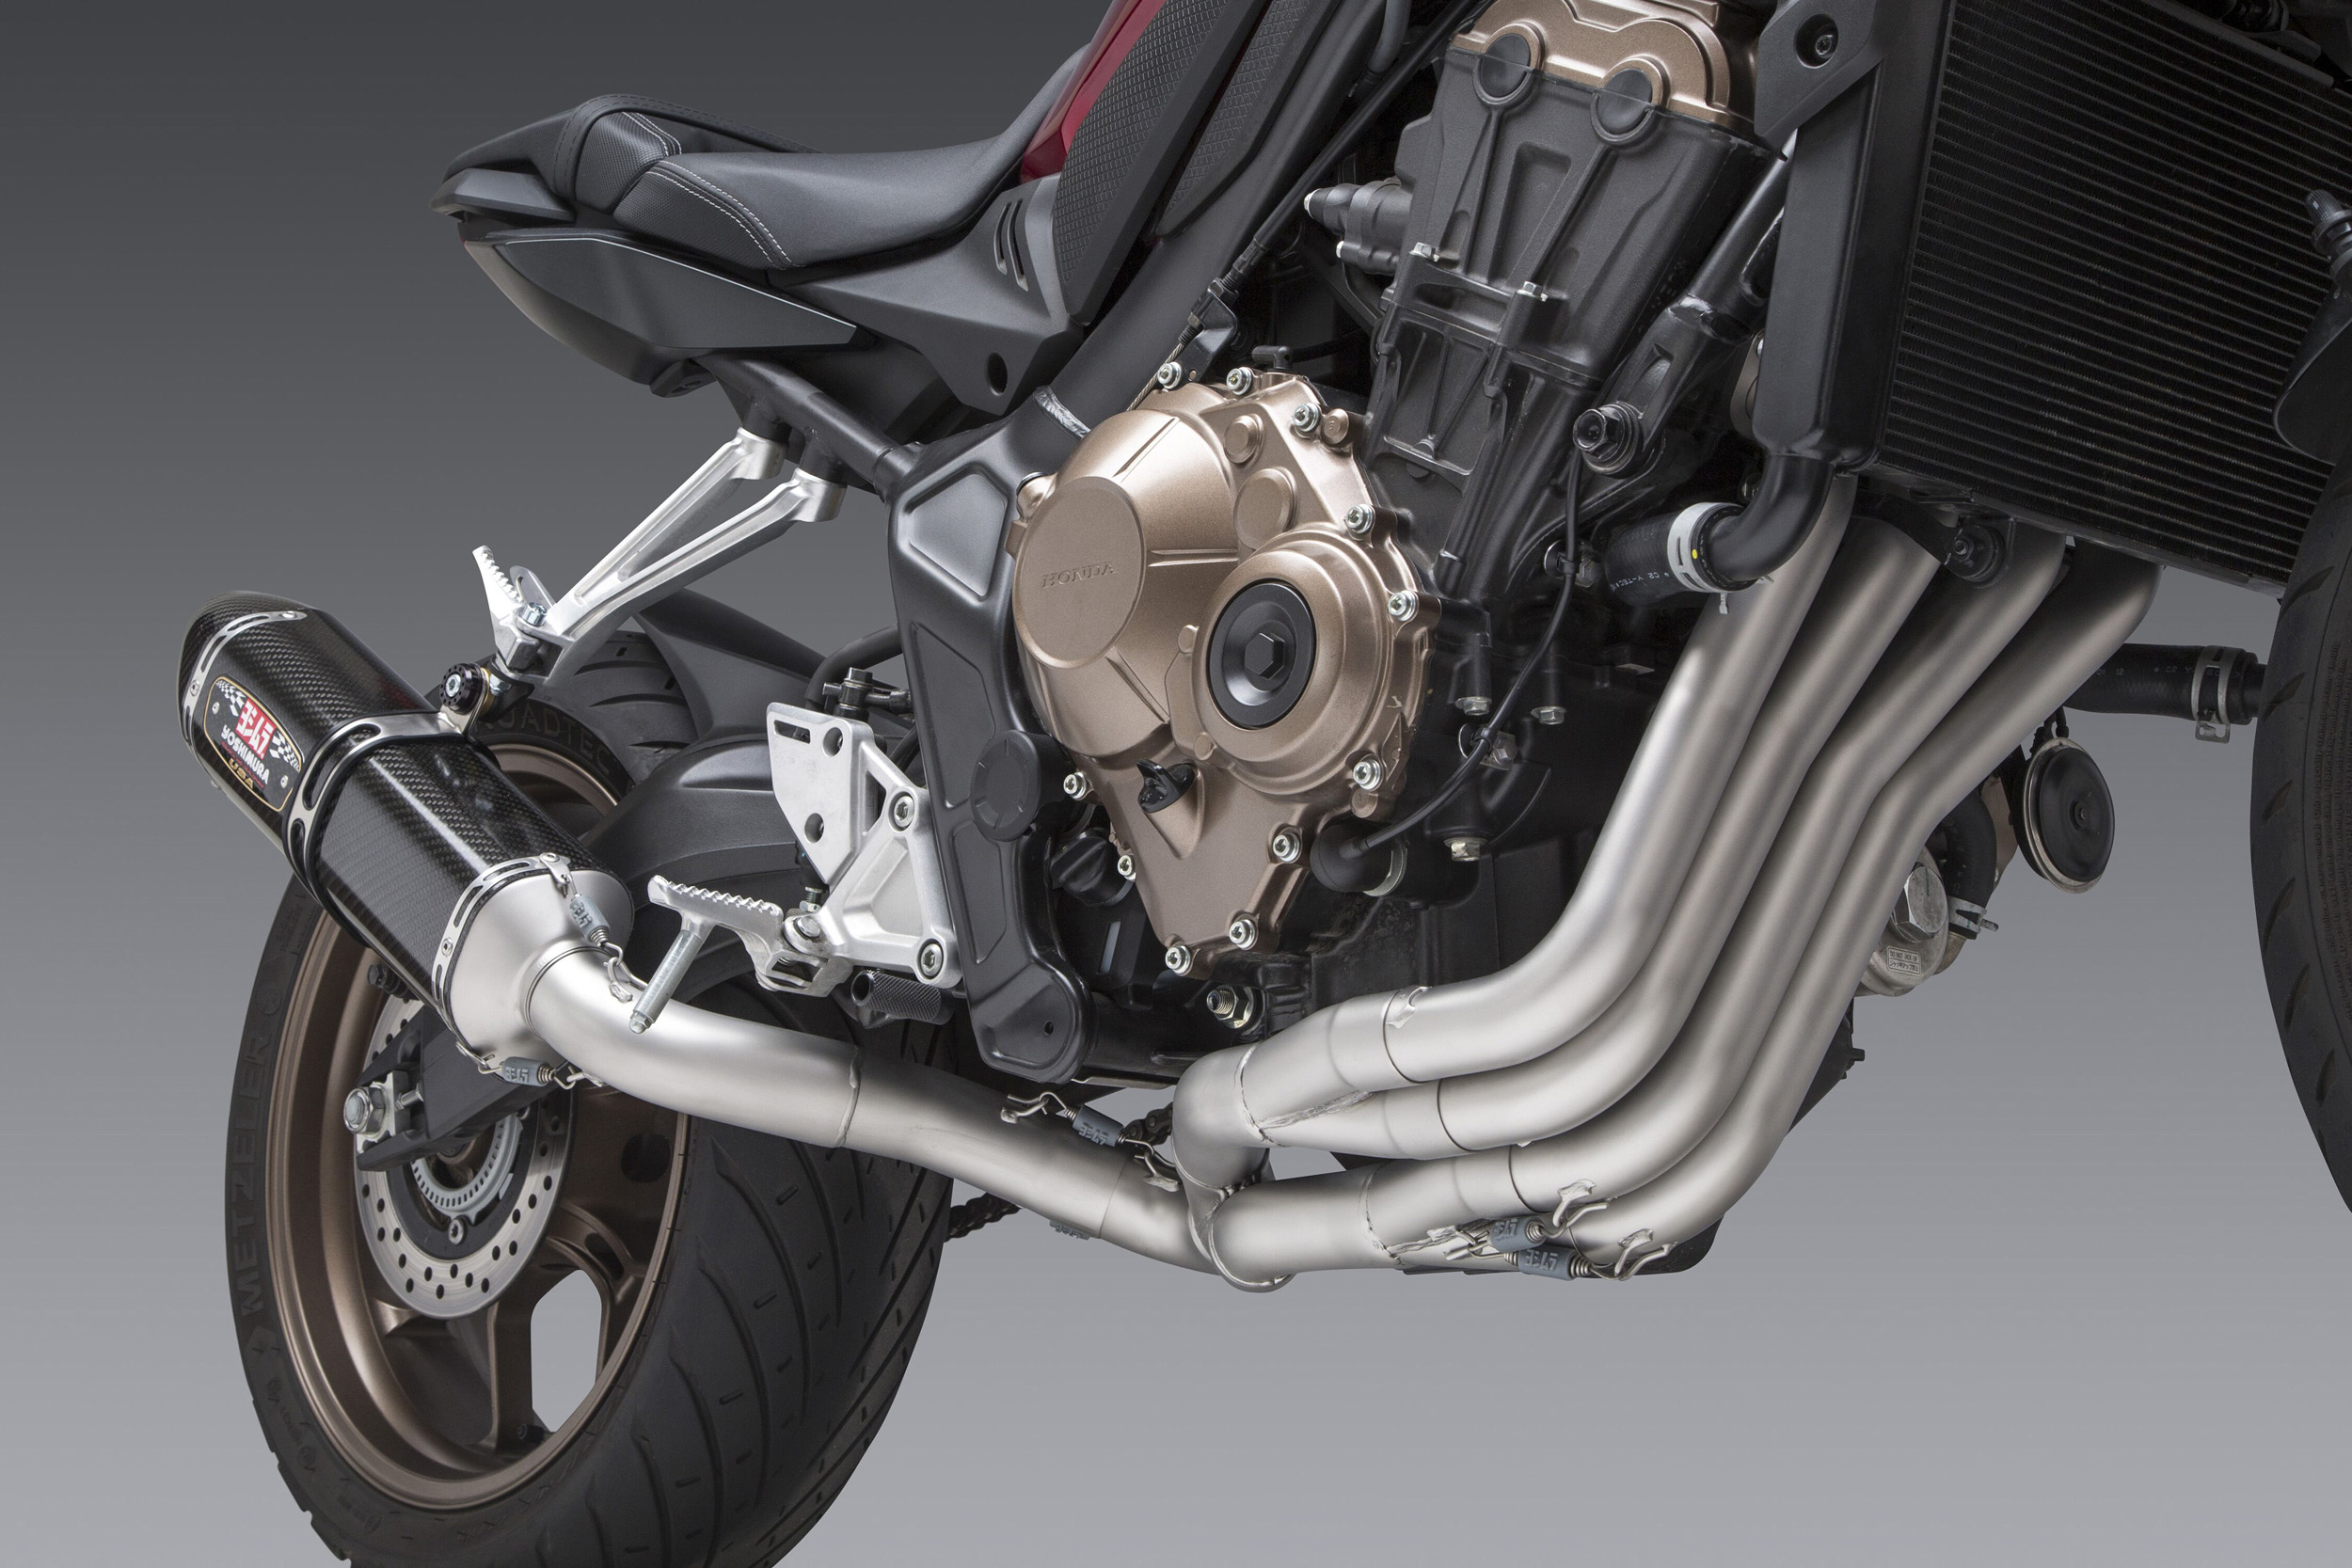 200109 2019 CB650R Works Finish headers are a work of art!